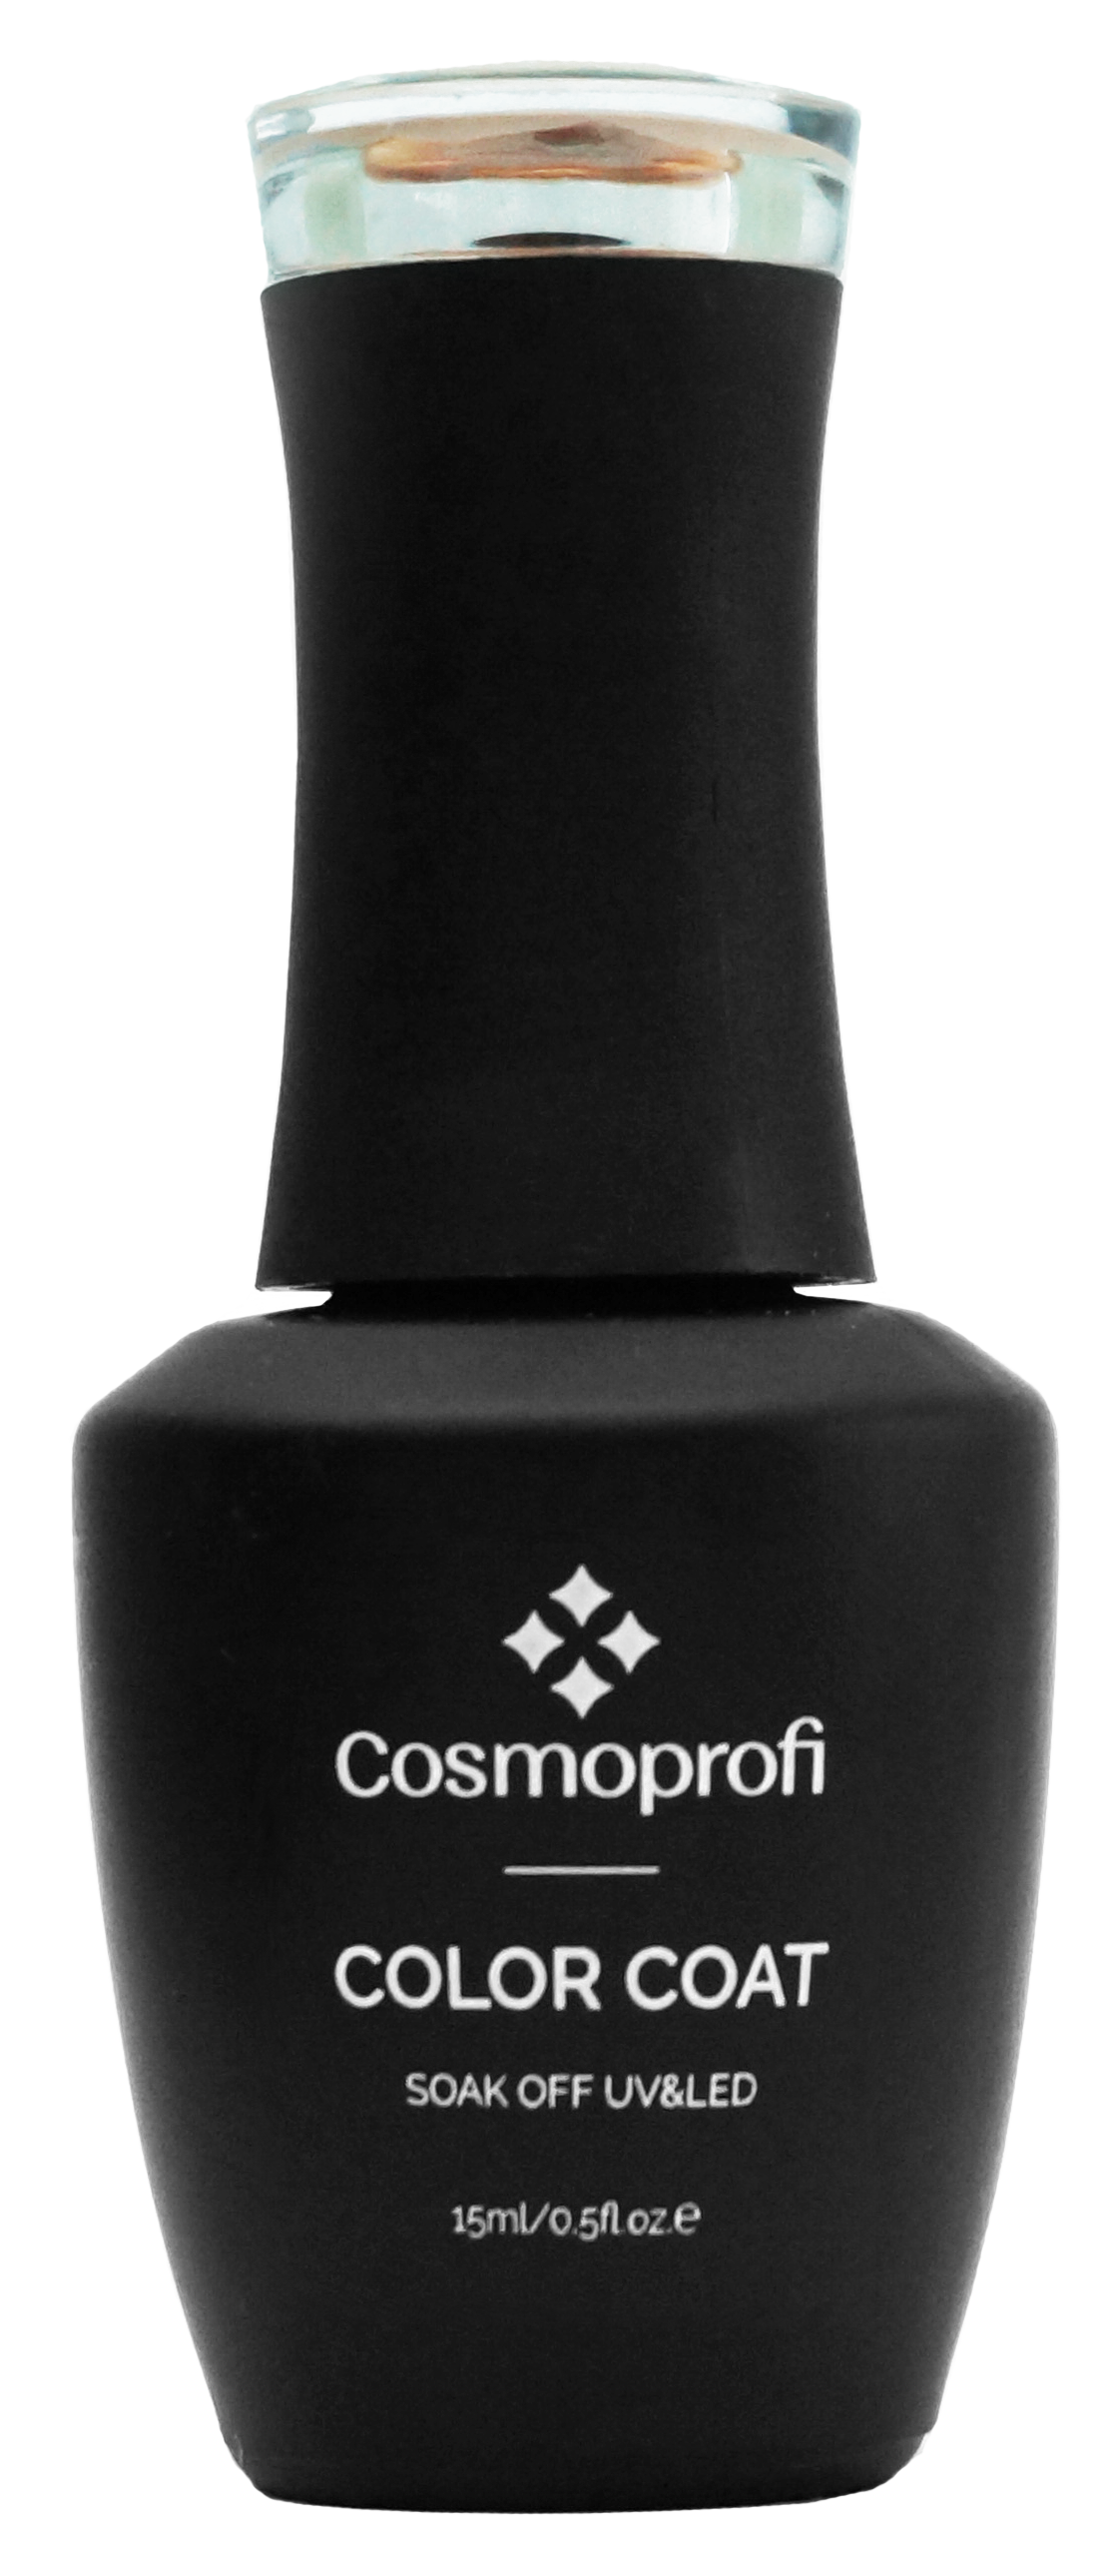 Гель-лак Cosmoprofi, Color coat № 256, 15 мл